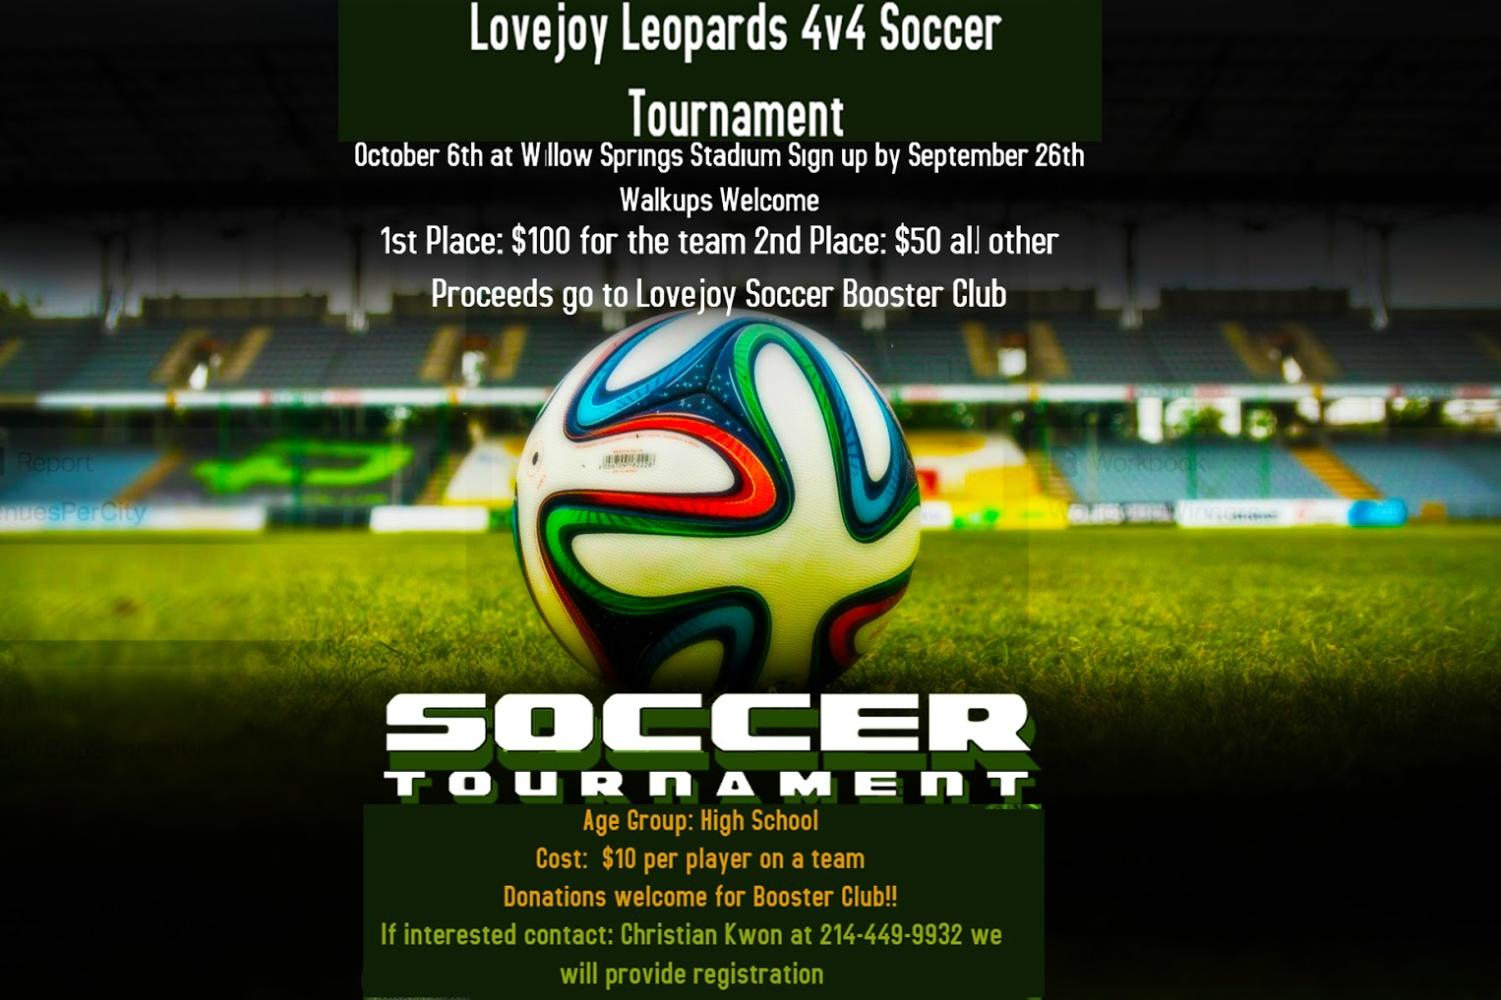 The proceeds of the tournament will benefit the Lovejoy Soccer Booster Club.